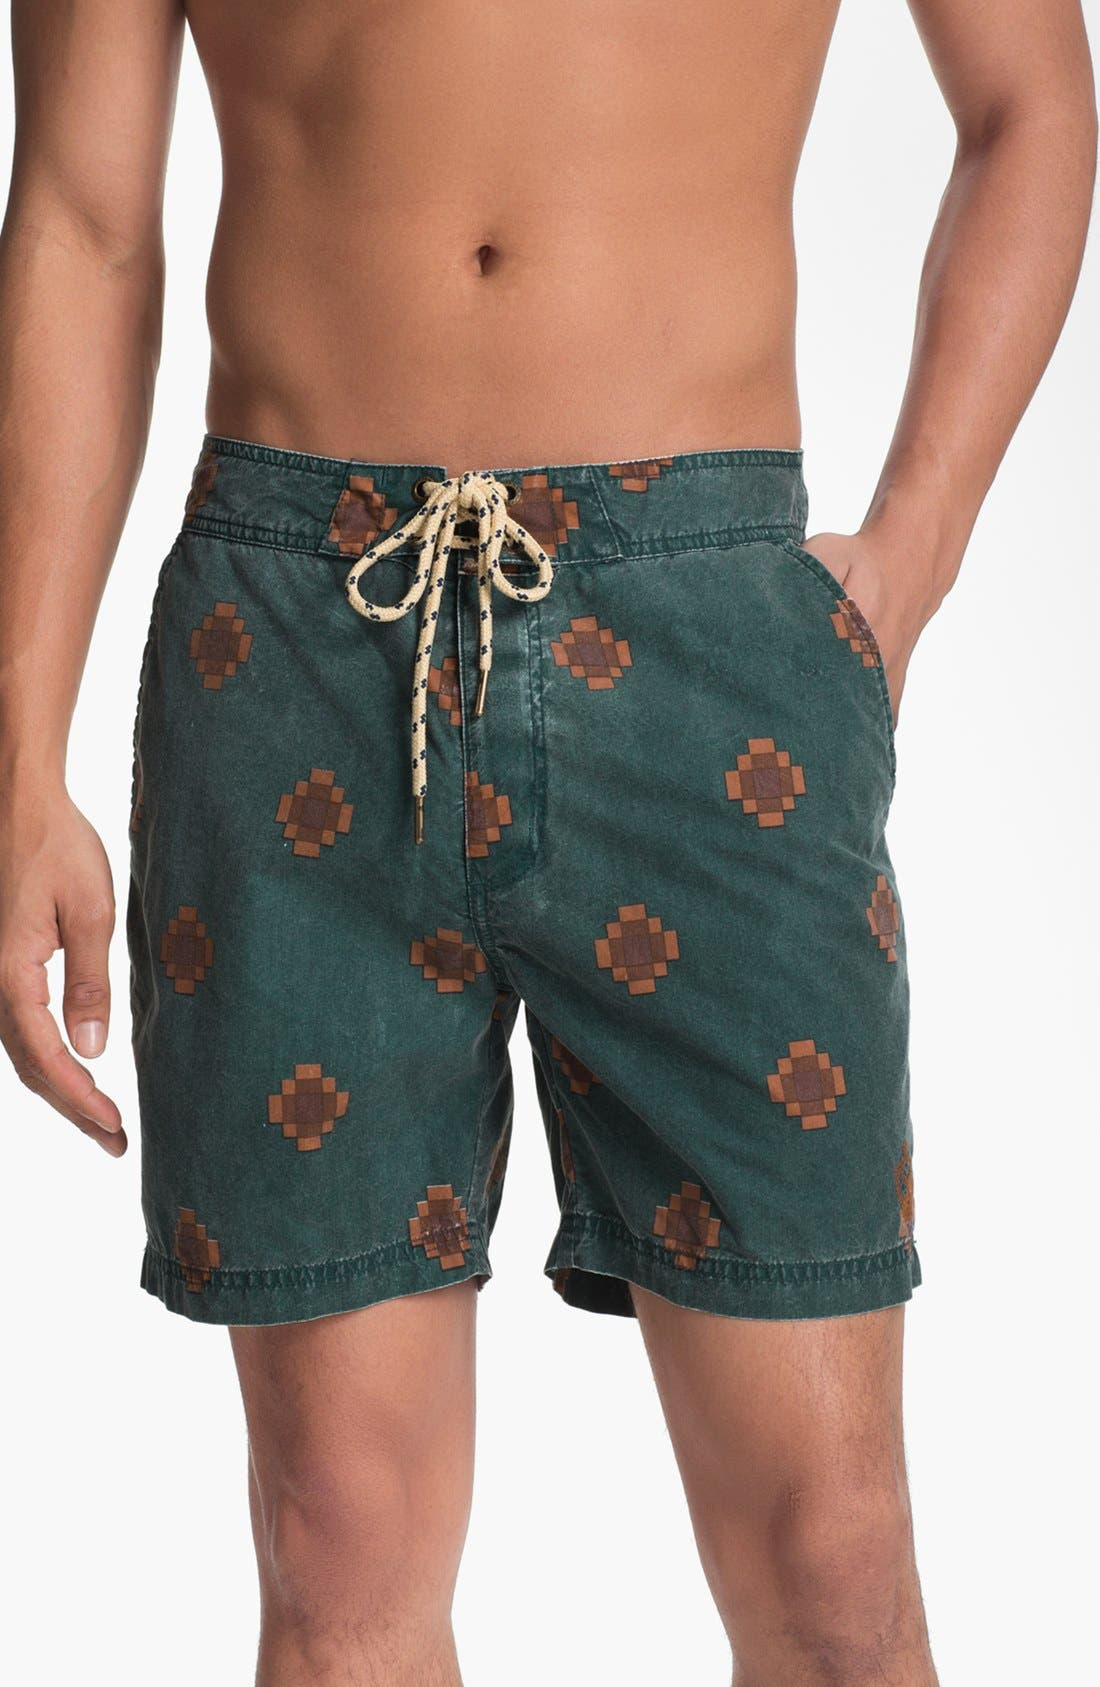 Alternate Image 1 Selected - ZANEROBE 'Zen' Board Shorts